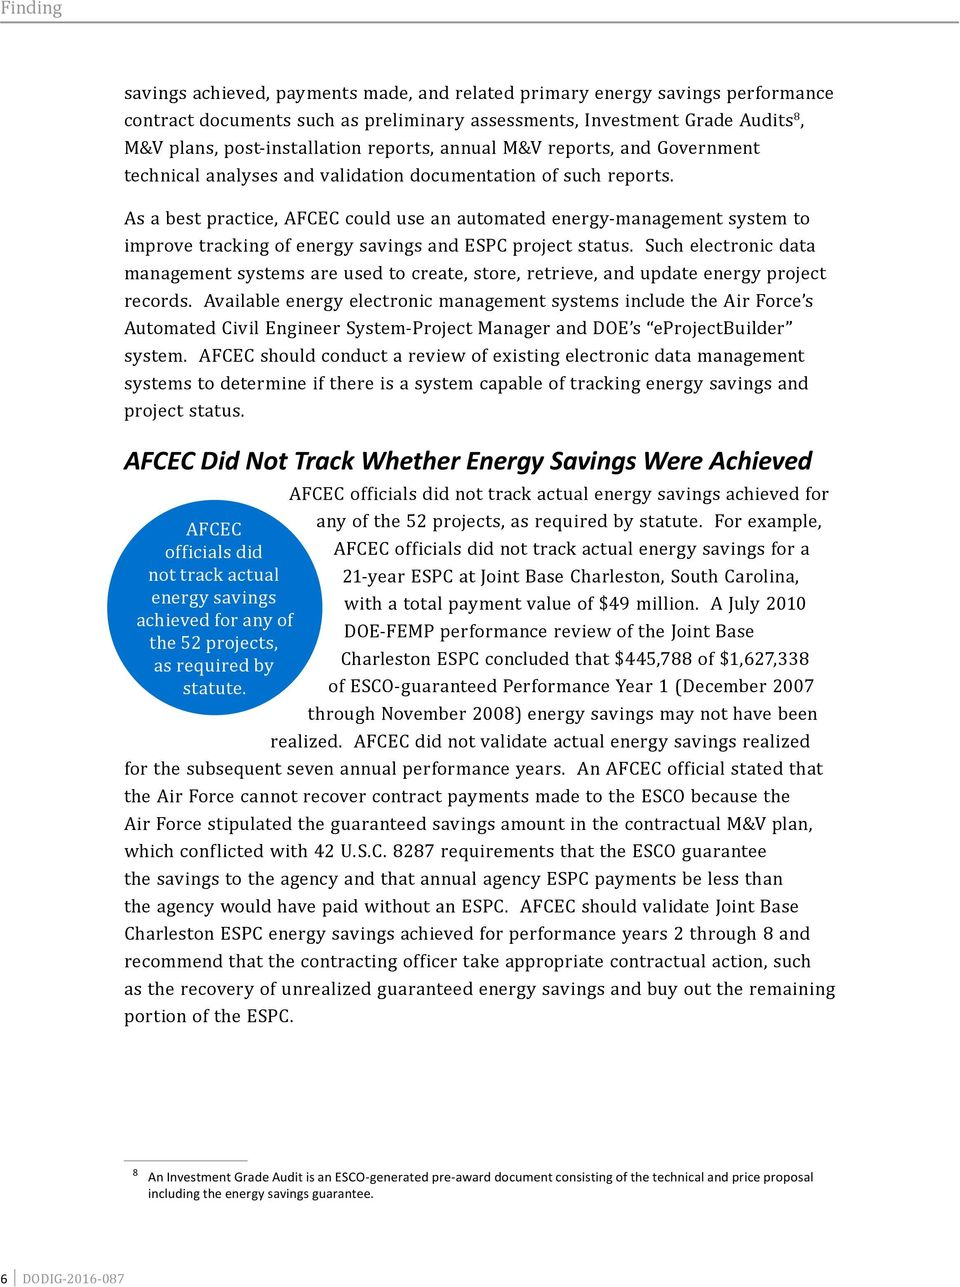 As a best practice, AFCEC could use an automated energy-management system to improve tracking of energy savings and ESPC project status.